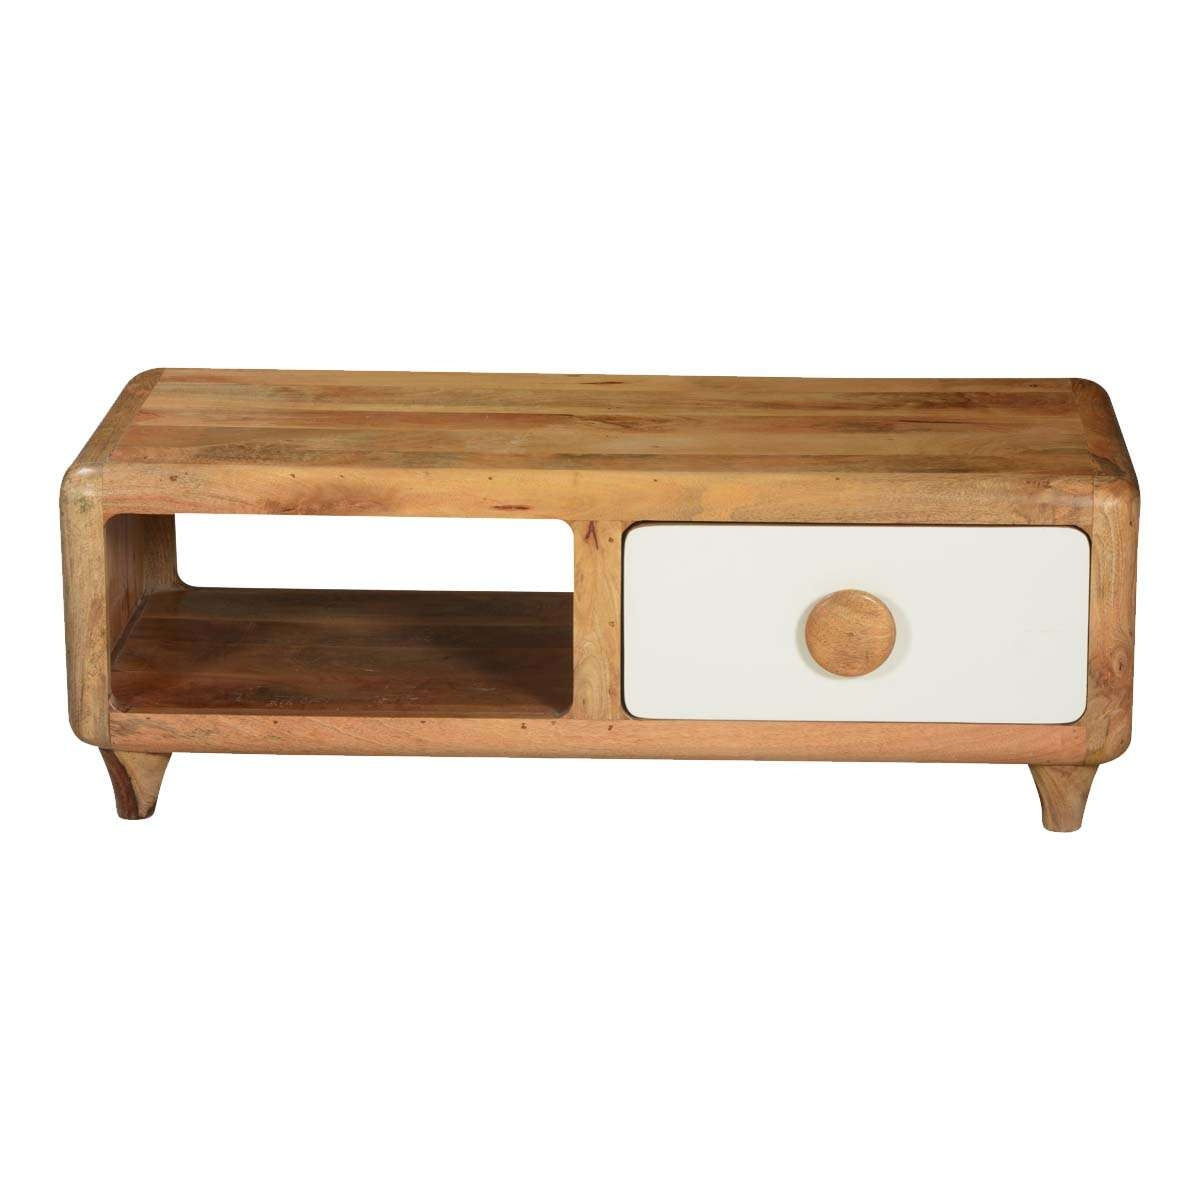 Preferred Coffee Table Rounded Corners In Natural Mango Wood Rounded Corners Tv Console Media Cabinet (View 13 of 20)